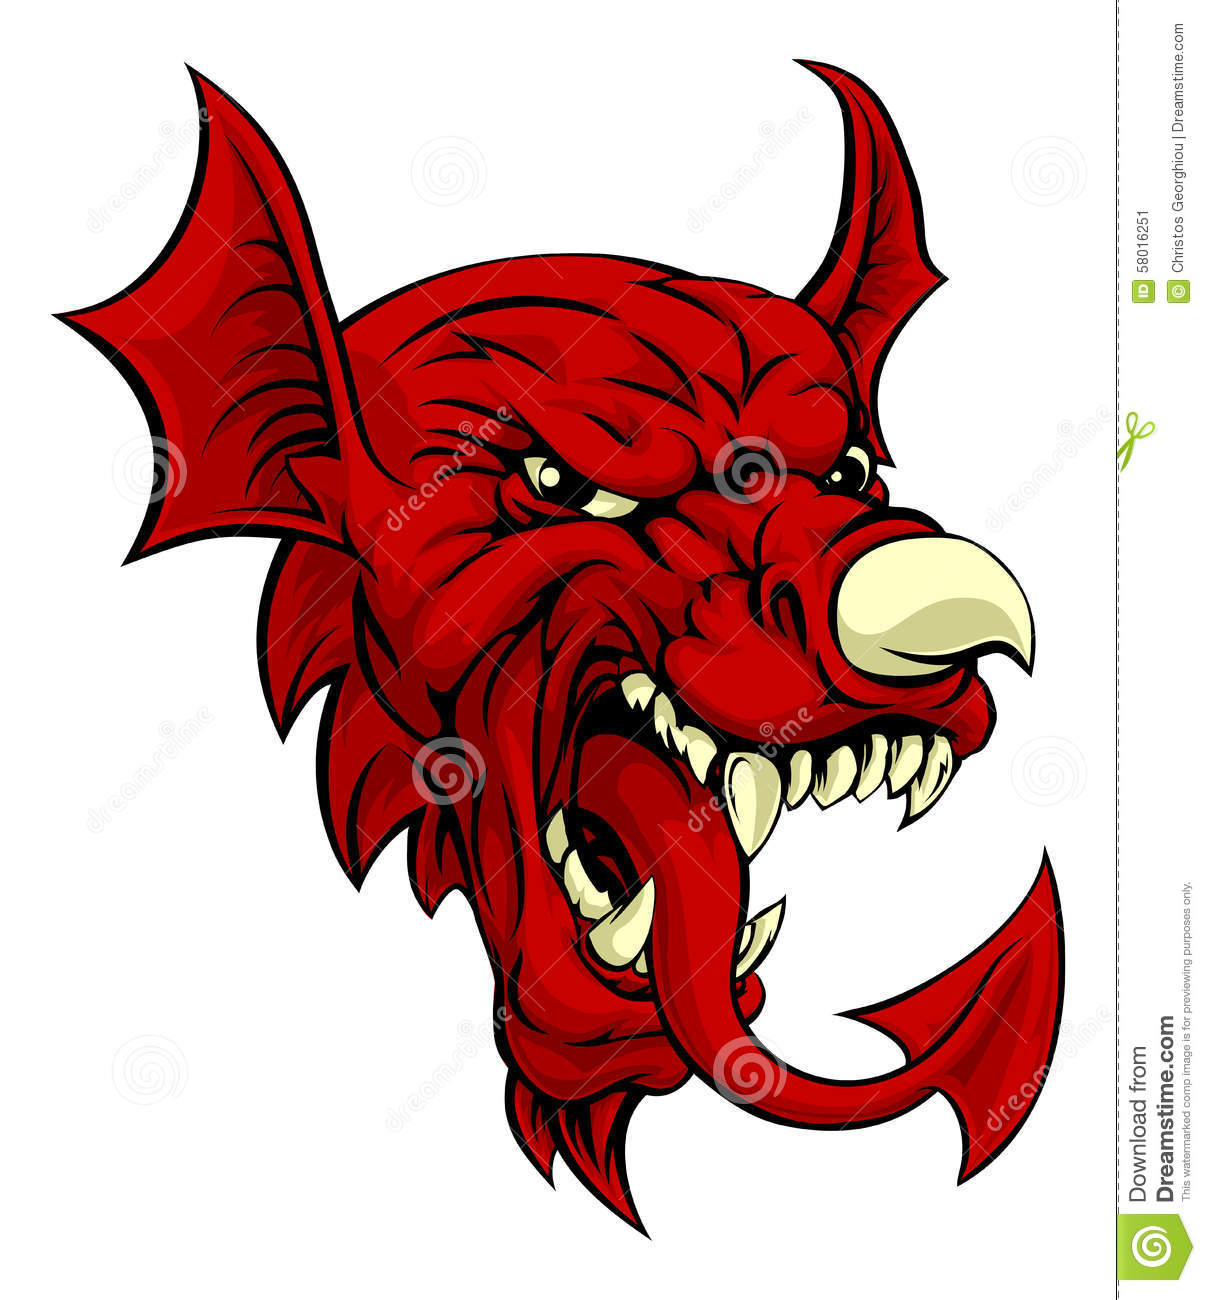 Welsh Dragon Stock Vector - Image: 58016251